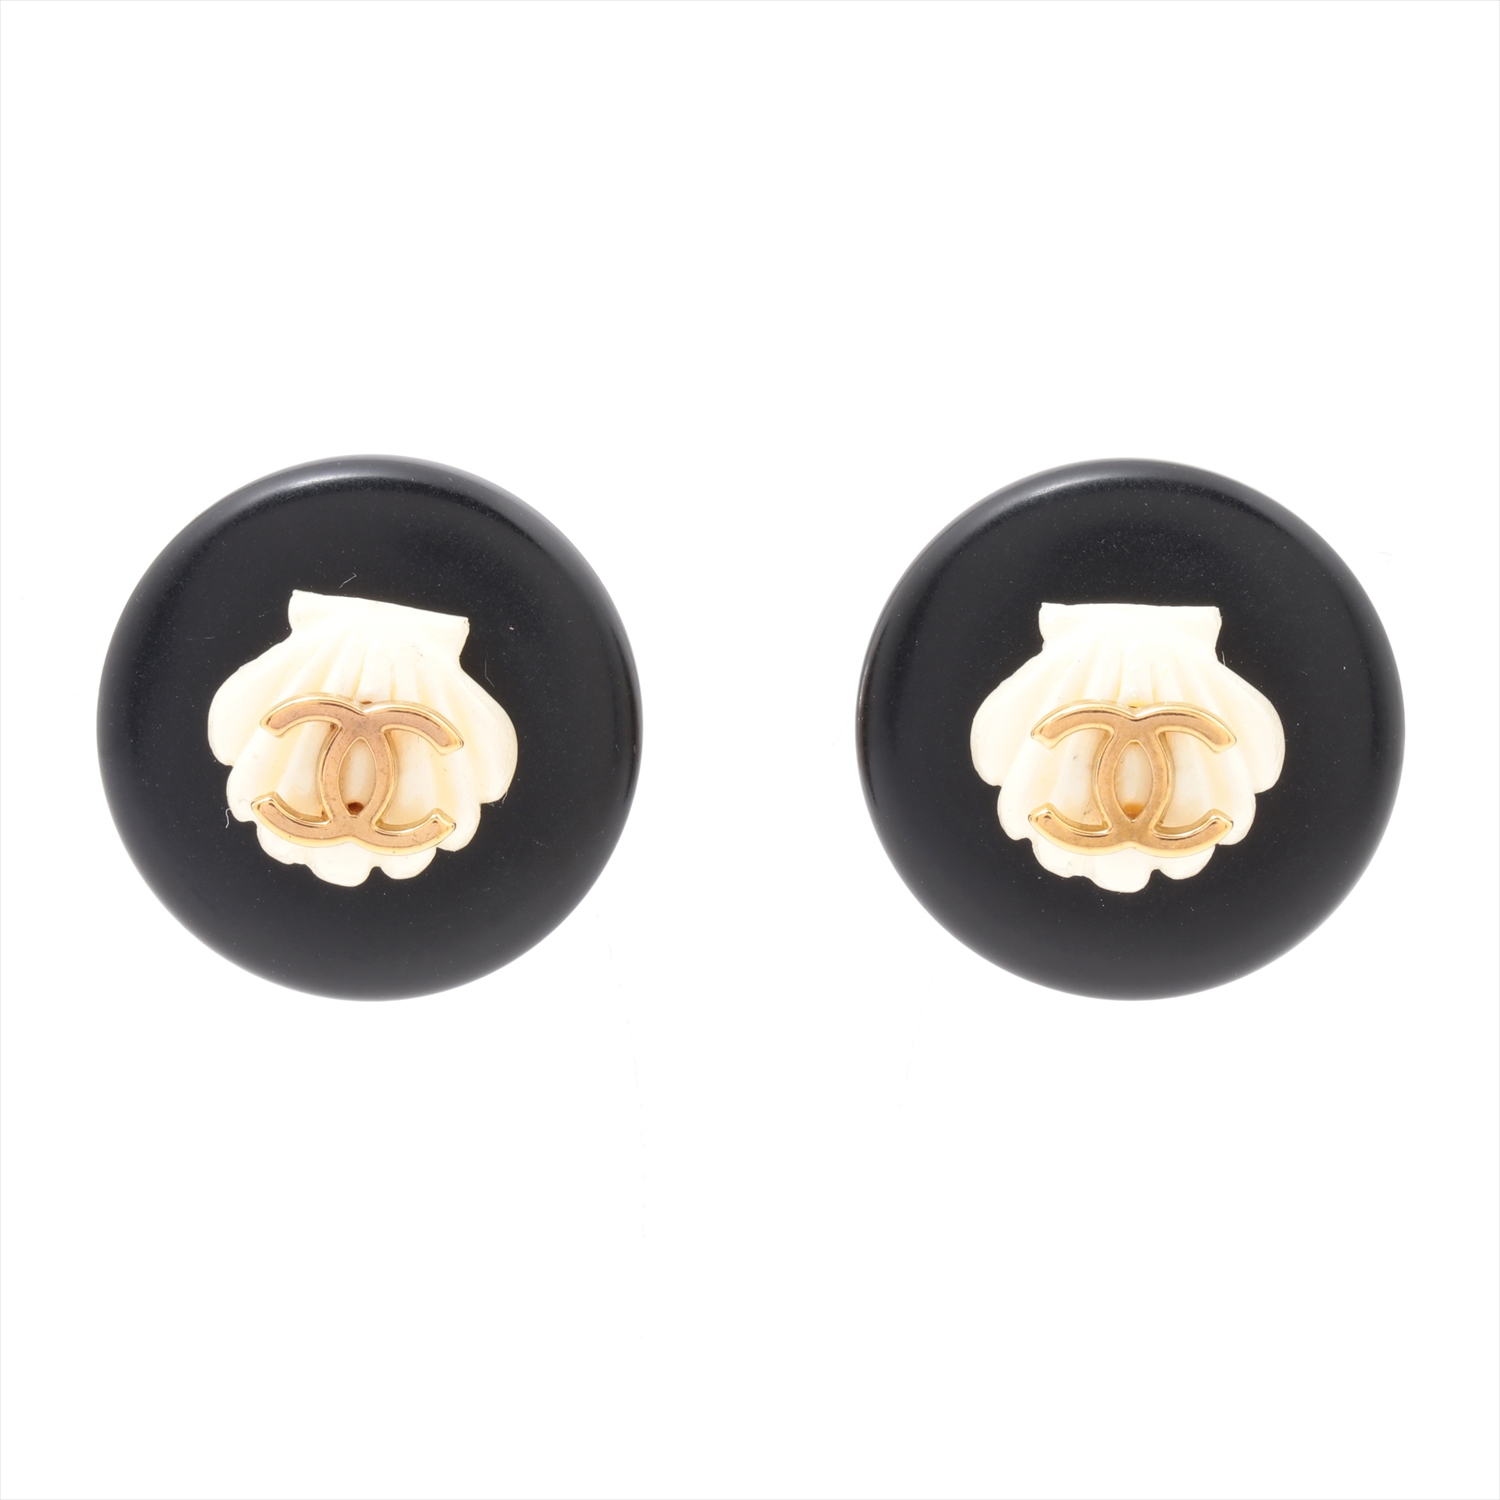 [Used goods] Chanel Coco mark earrings (for both ears) plastic black shell 96C